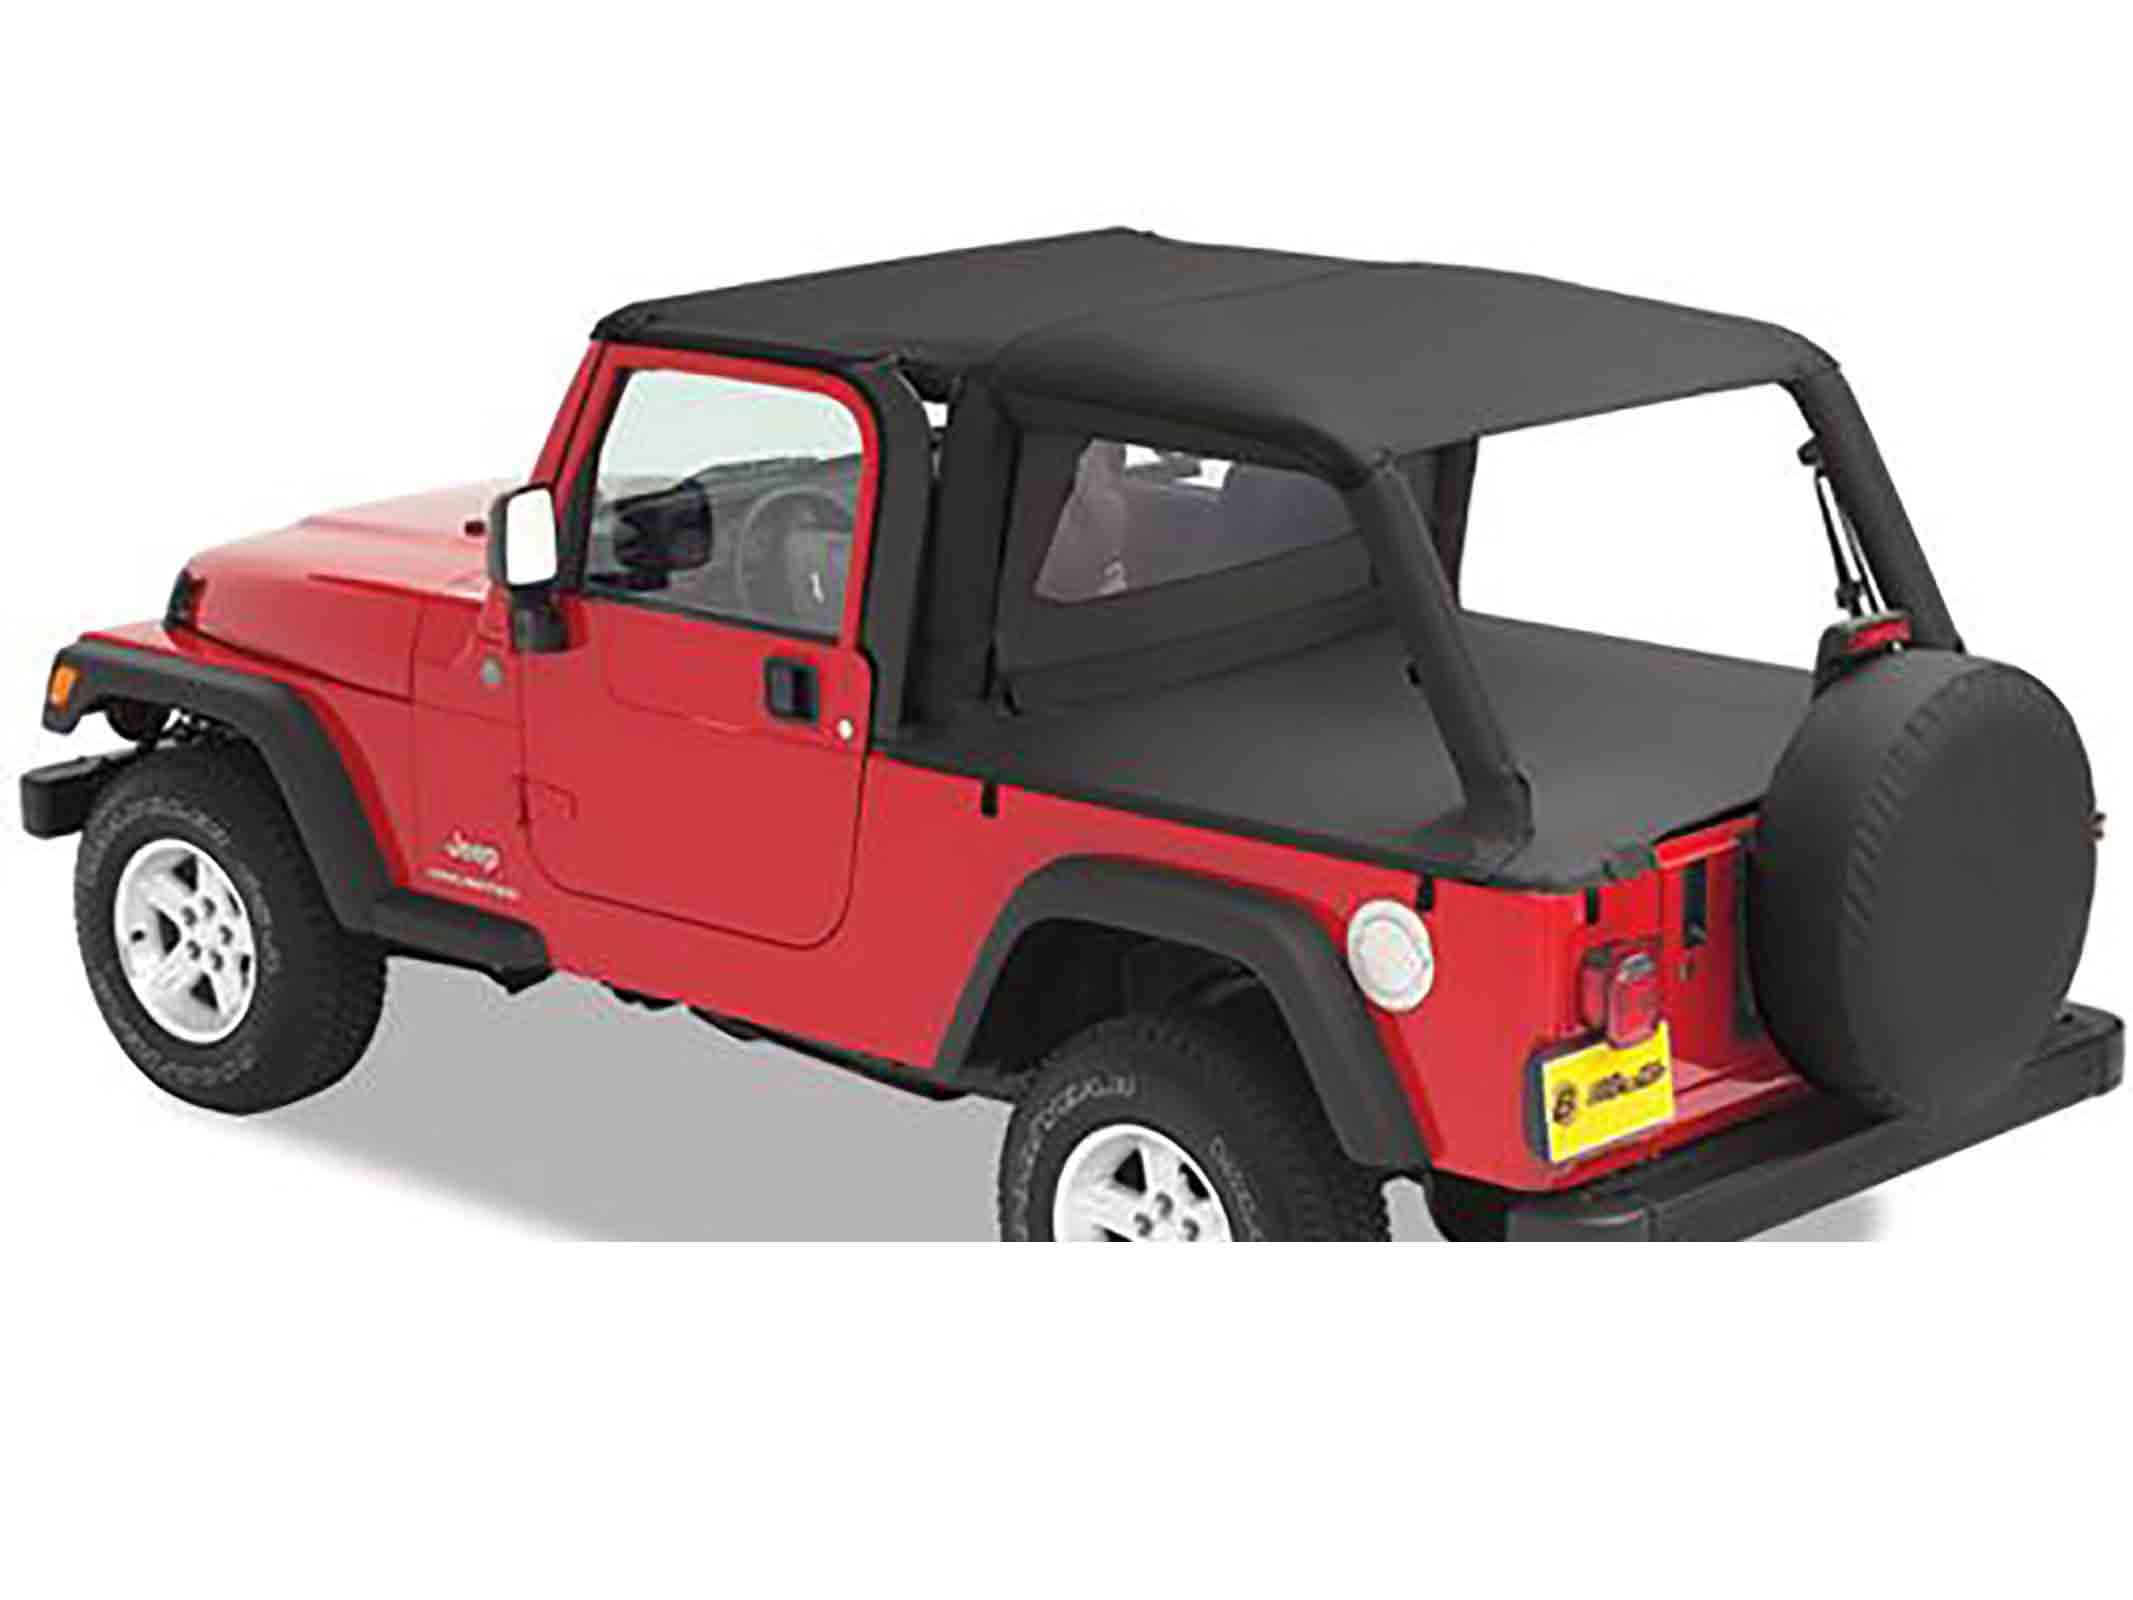 Bikini completo versione safari wrangler tj unlimited 04 06 black diamond ricambi jeep